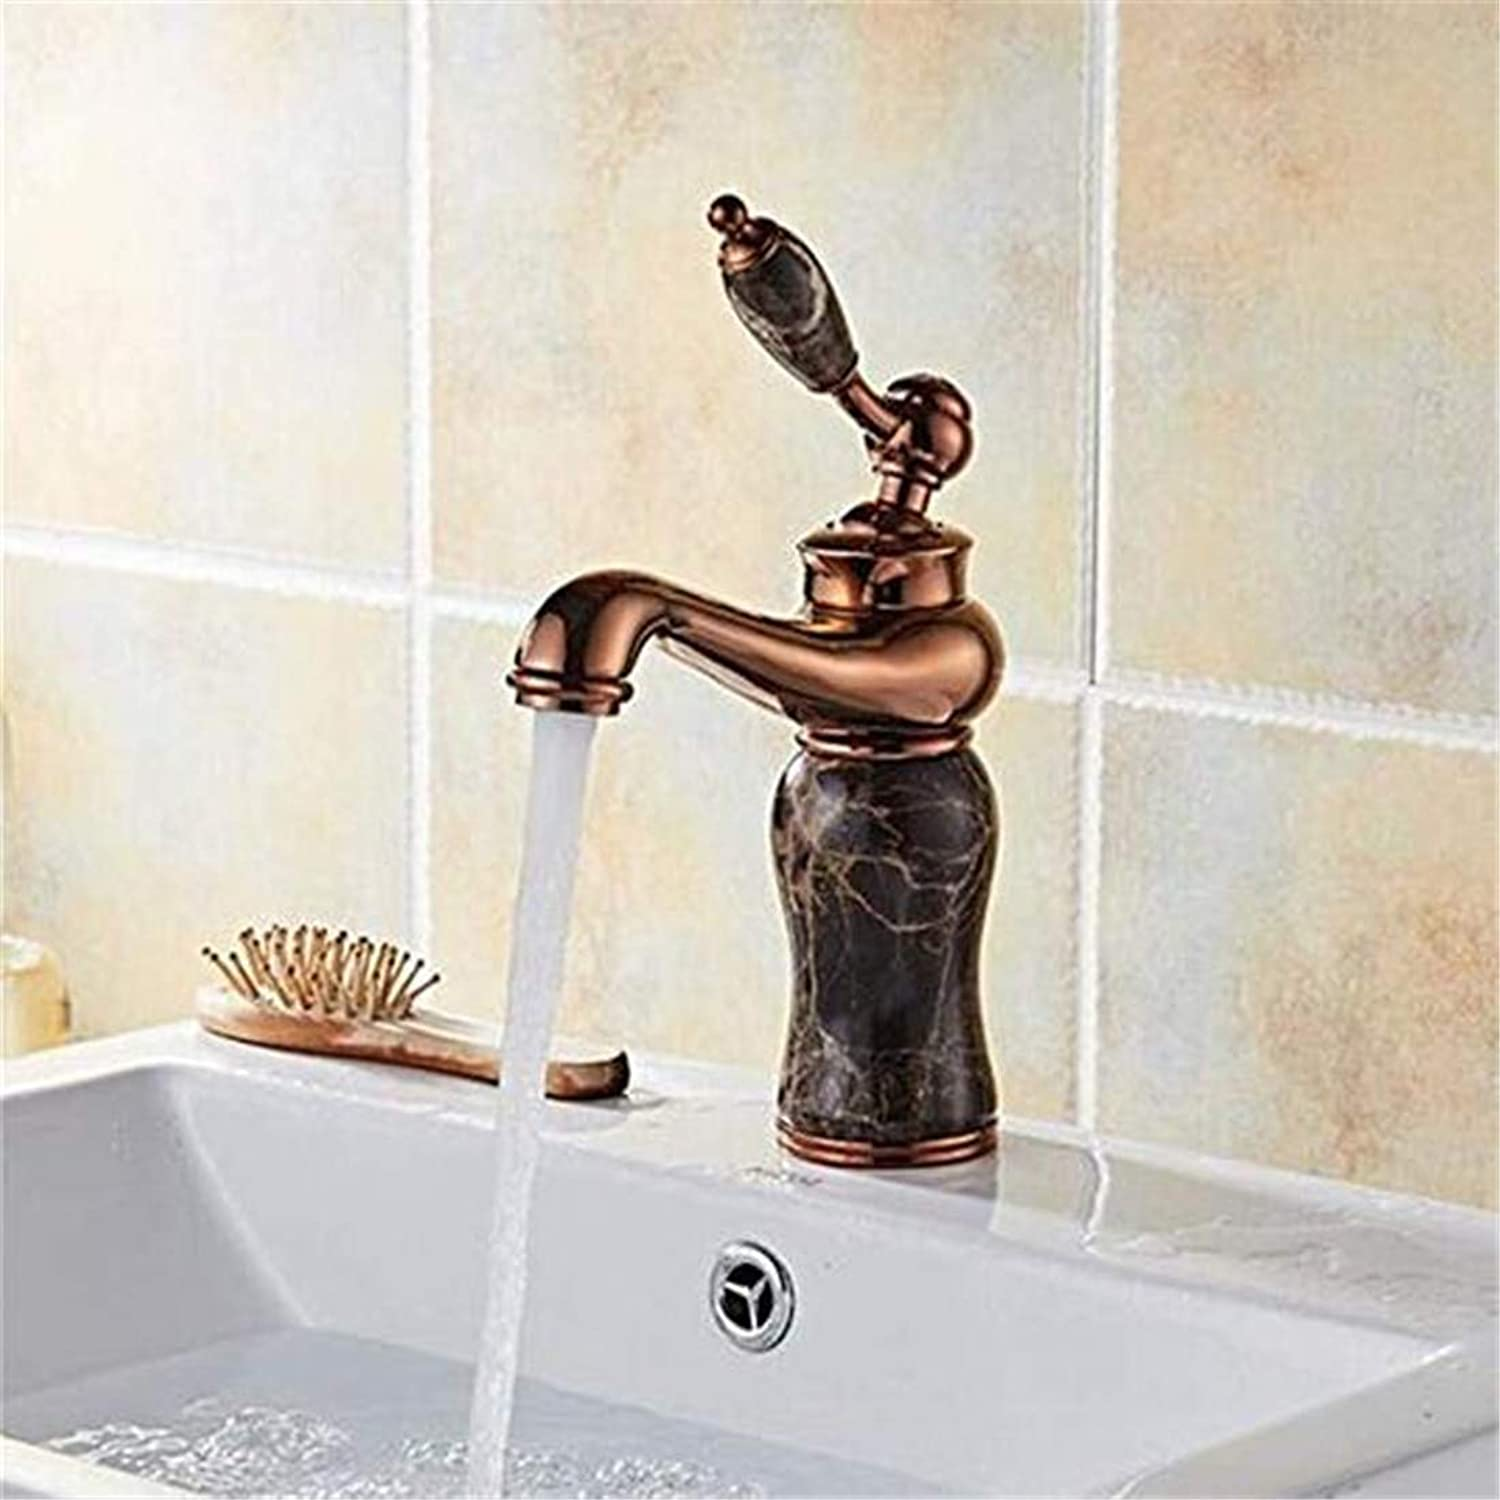 Modern Hot and Cold Vintage Platingfaucet European Archaize Home All Delicate Basin Faucet Copper